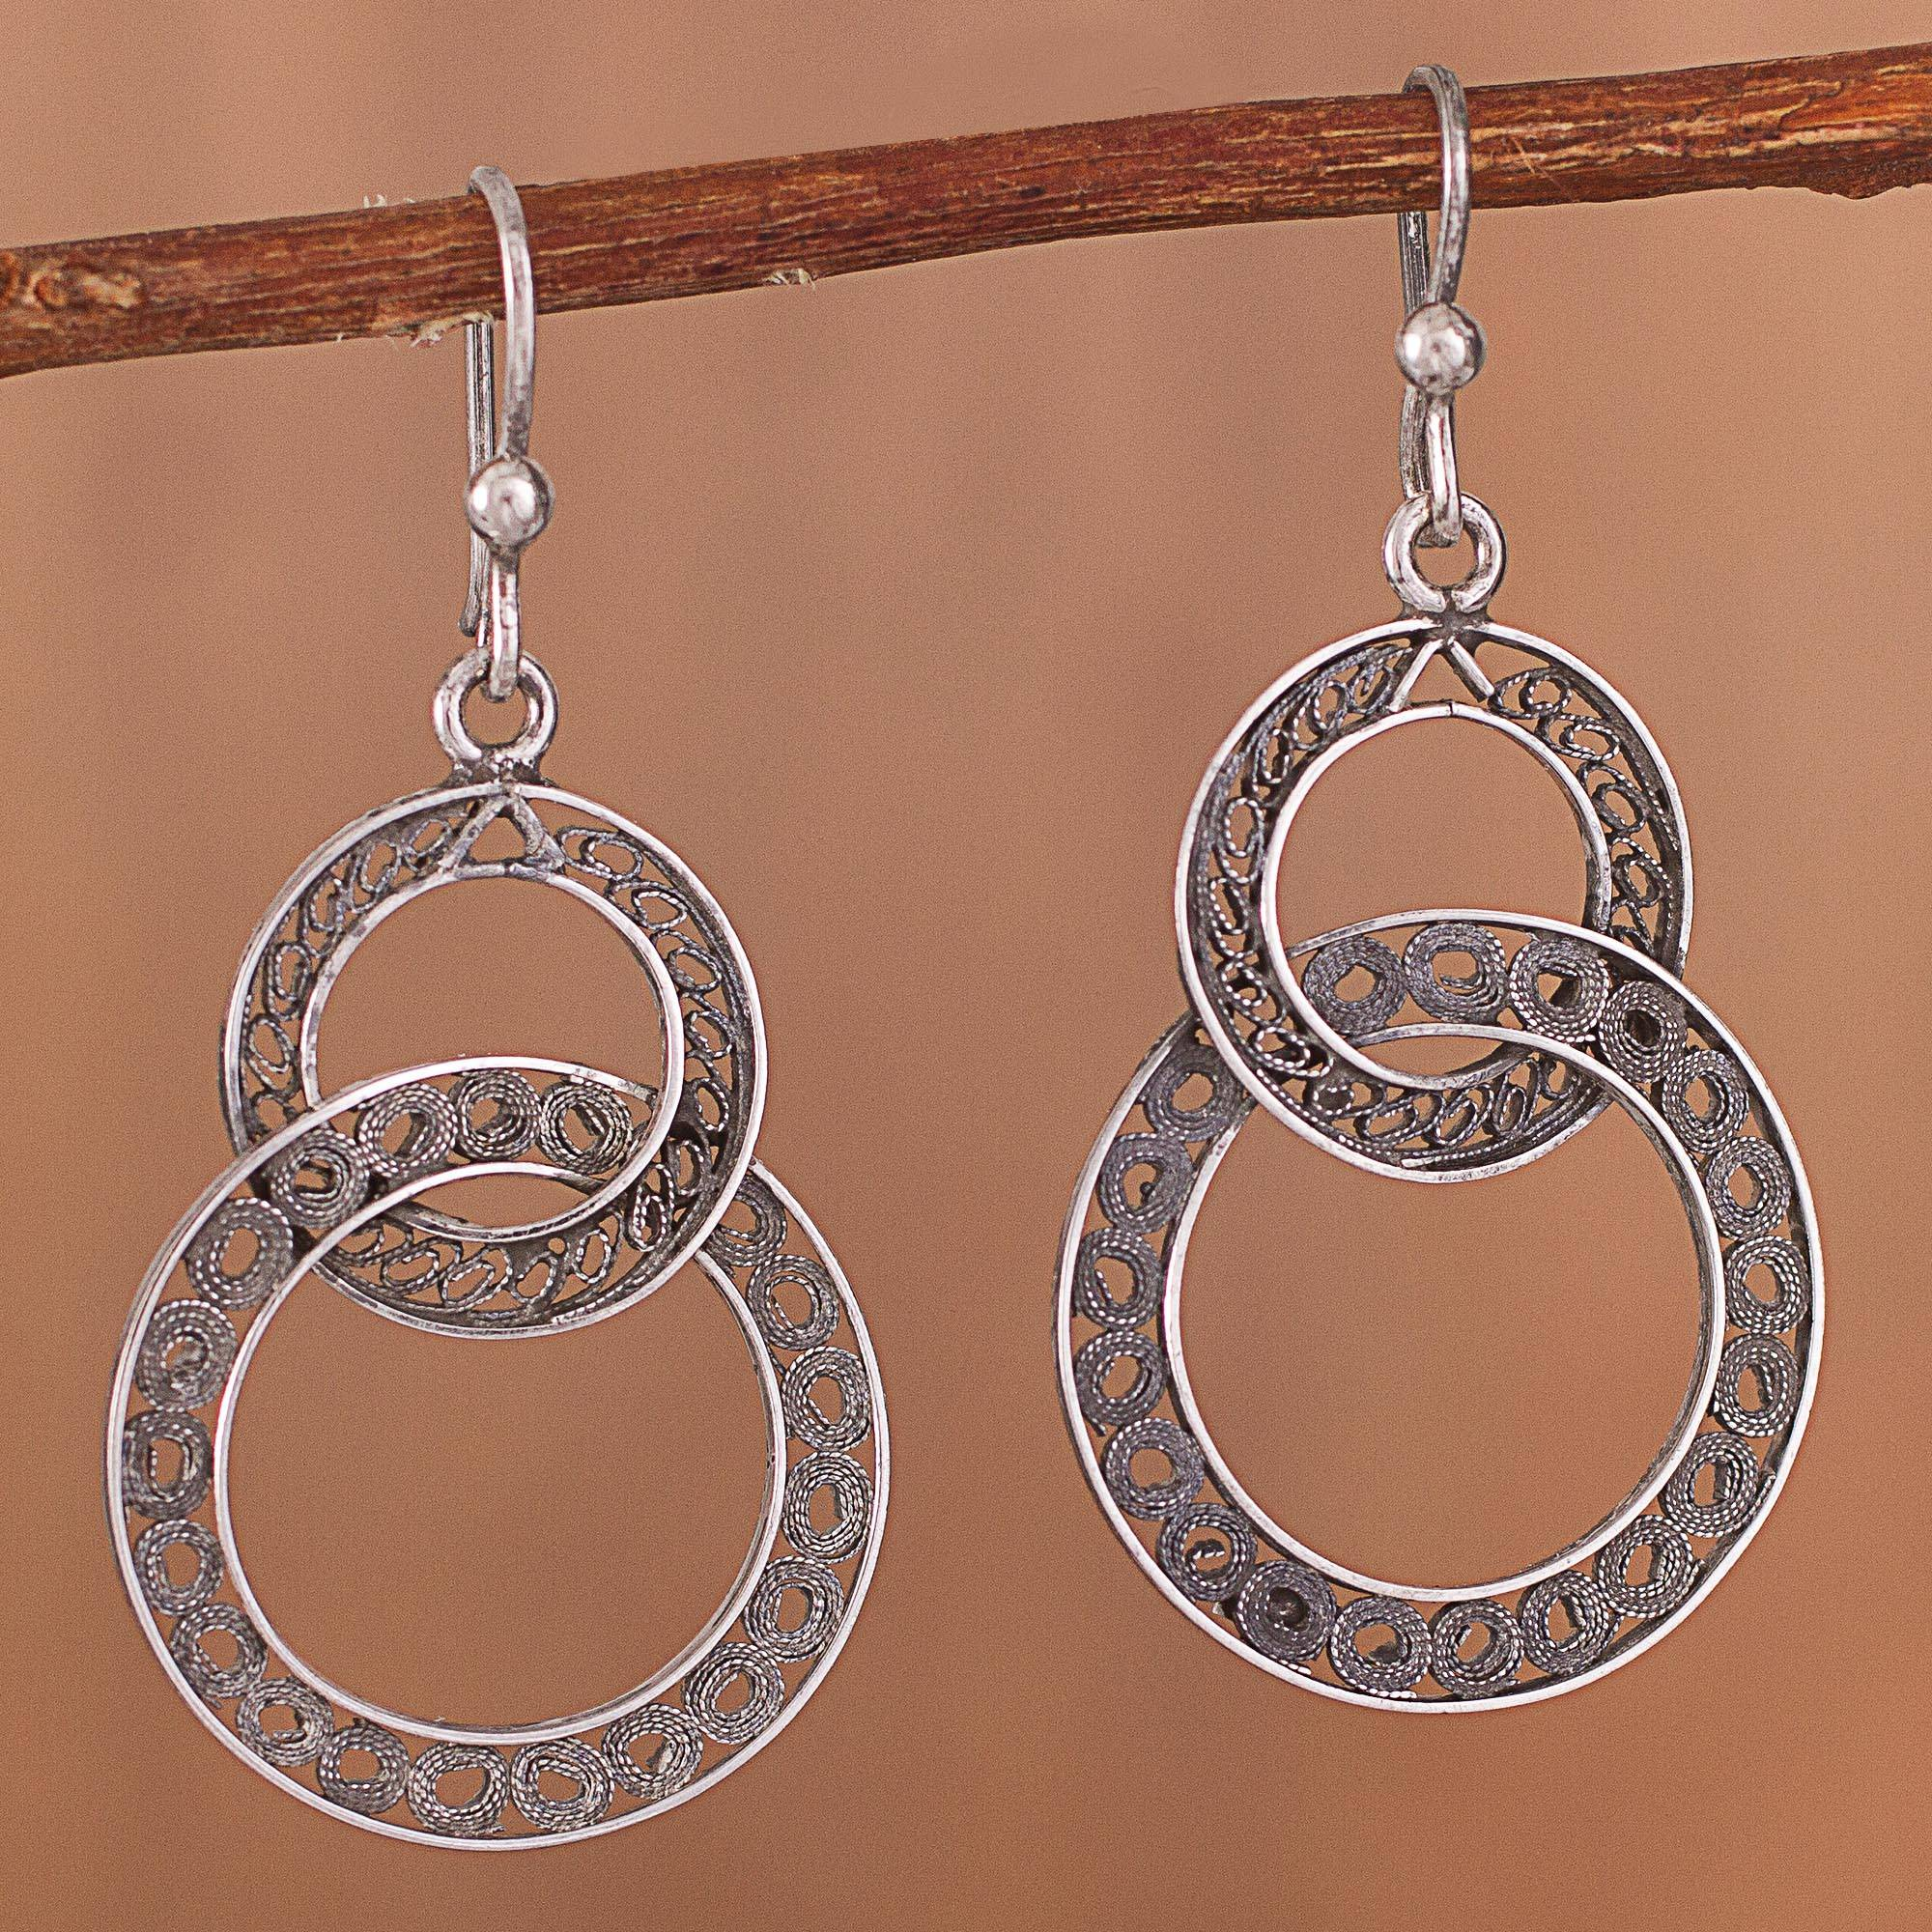 Oxidized Sterling Silver Filigree Circles Dangle Earrings Looped In Antique